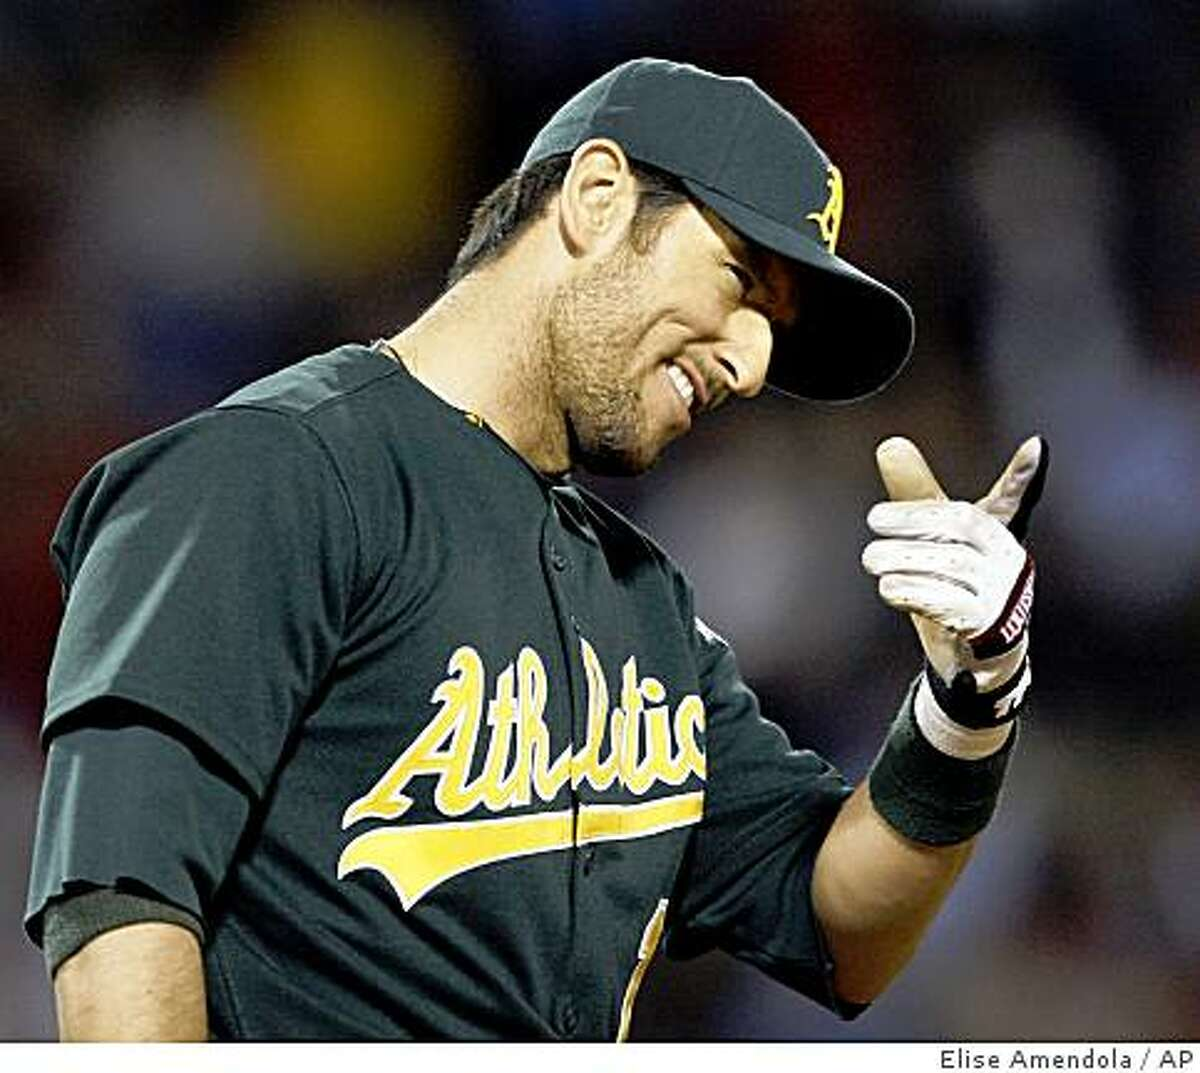 Oakland Athletics' Nomar Garciaparra, a former Boston Red Sox star player, points and smiles to fans as he takes the field during the eighth inning against the Boston Red Sox in a baseball game at Fenway Park in Boston, Wednesday, July 8, 2009. (AP Photo/Elise Amendola)